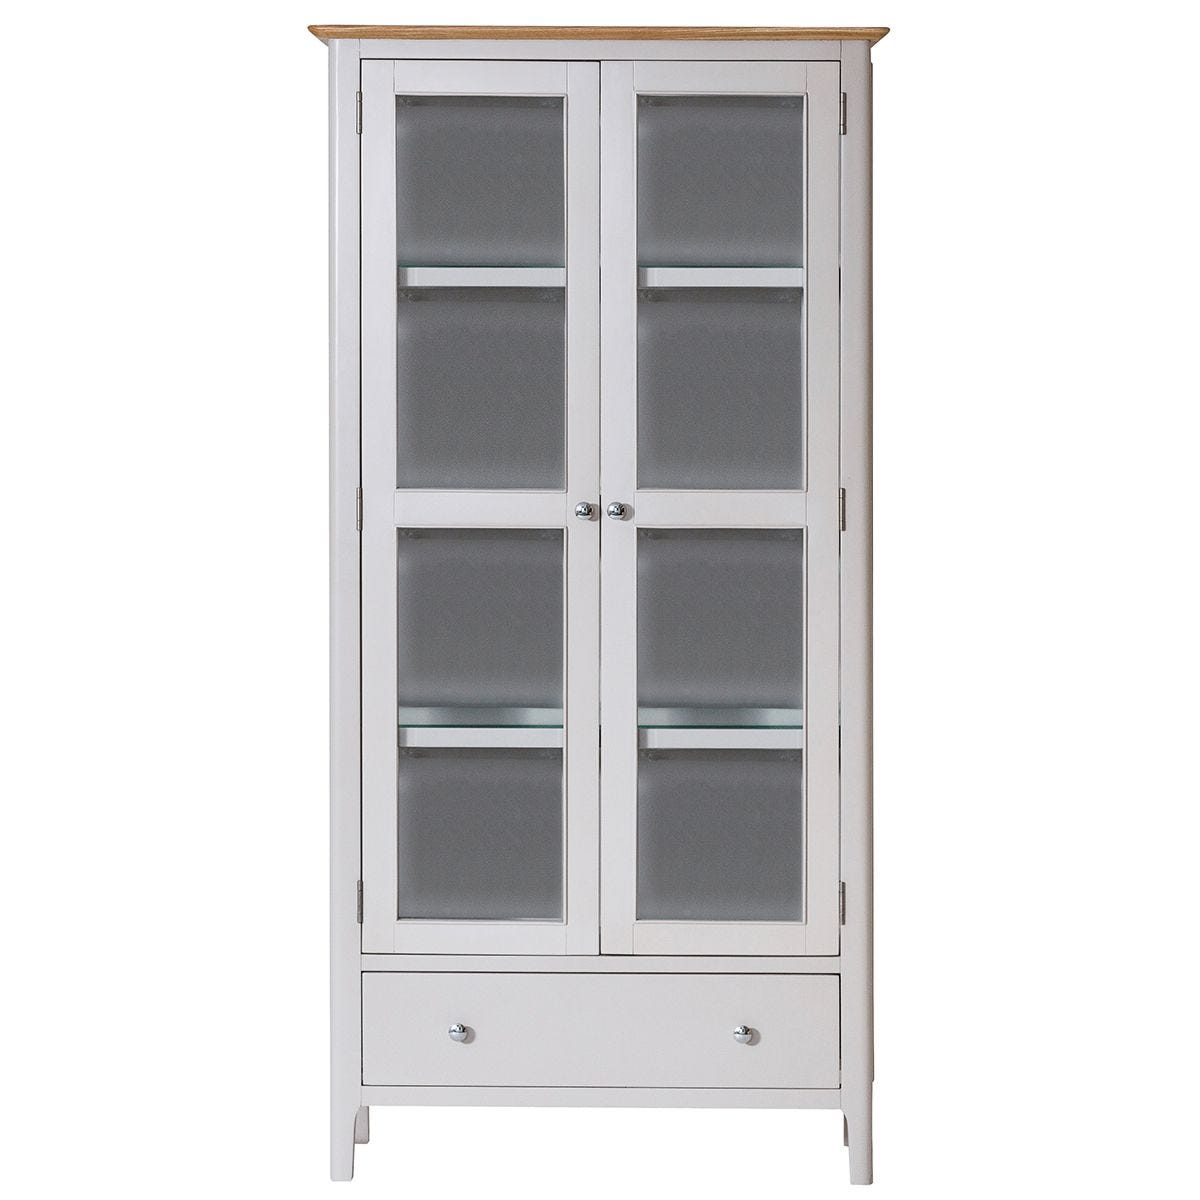 Notswood Display Cabinet